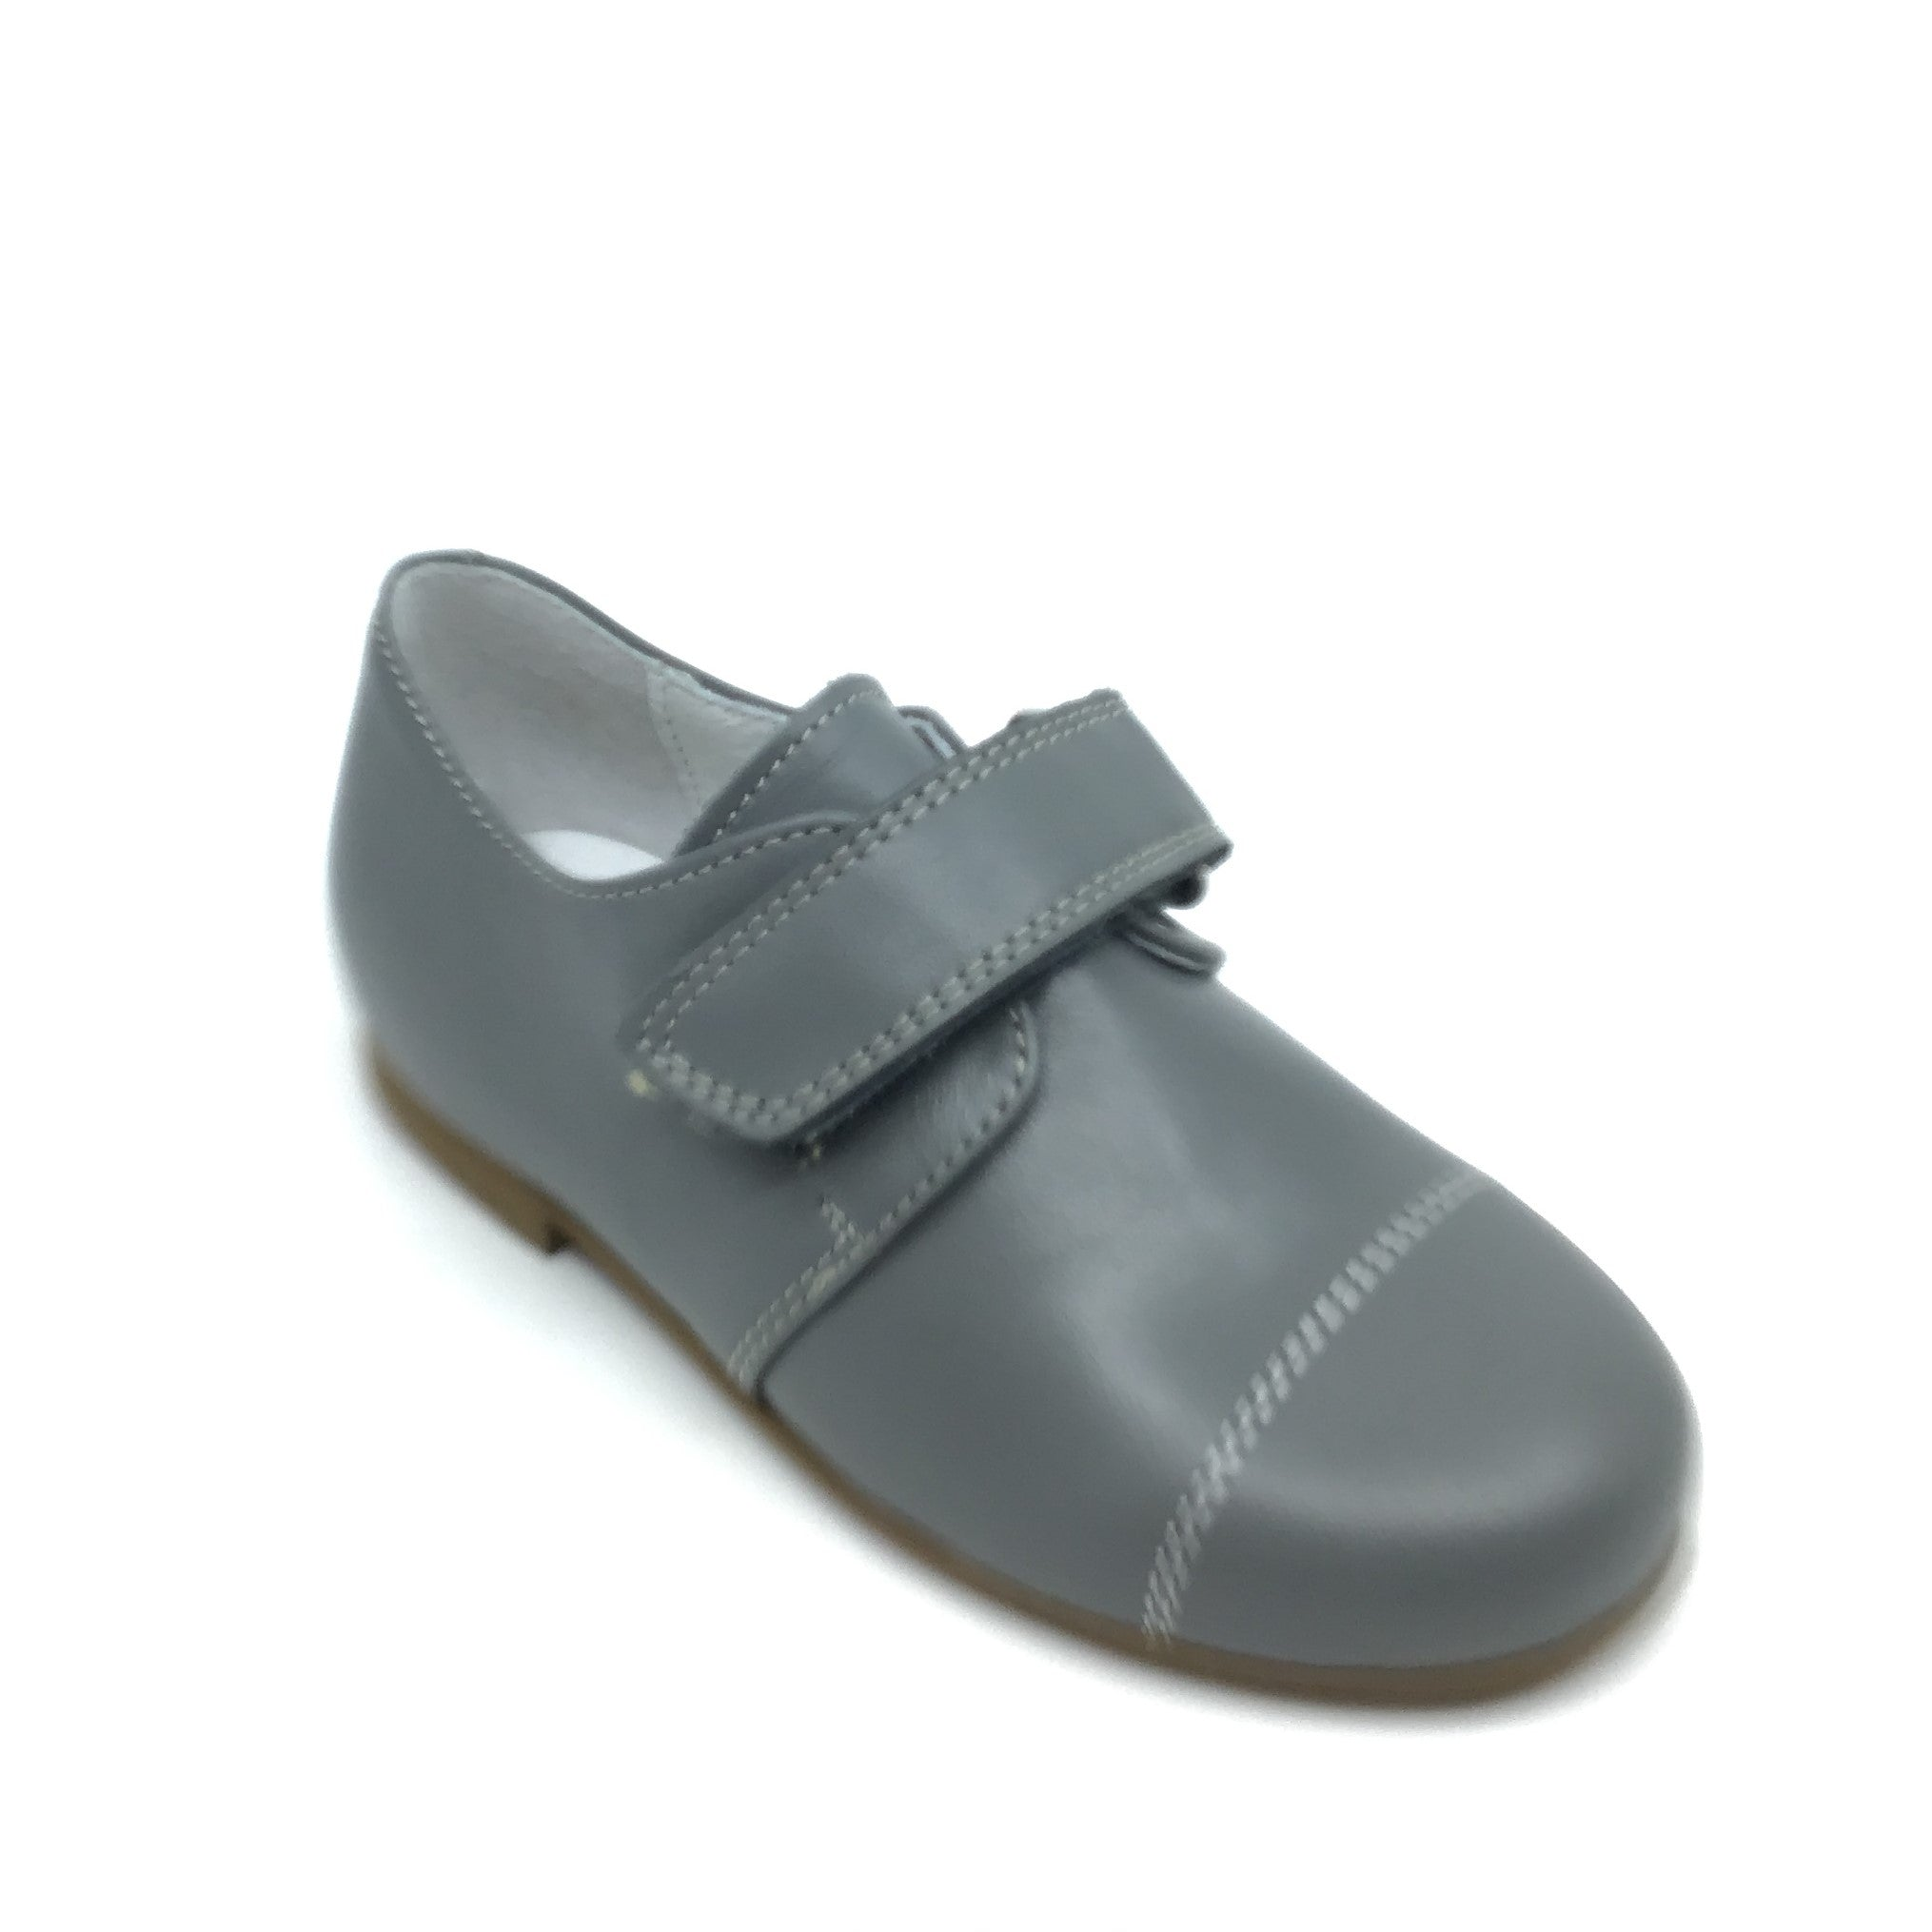 Zapeti Gray Velcro Dress Shoe